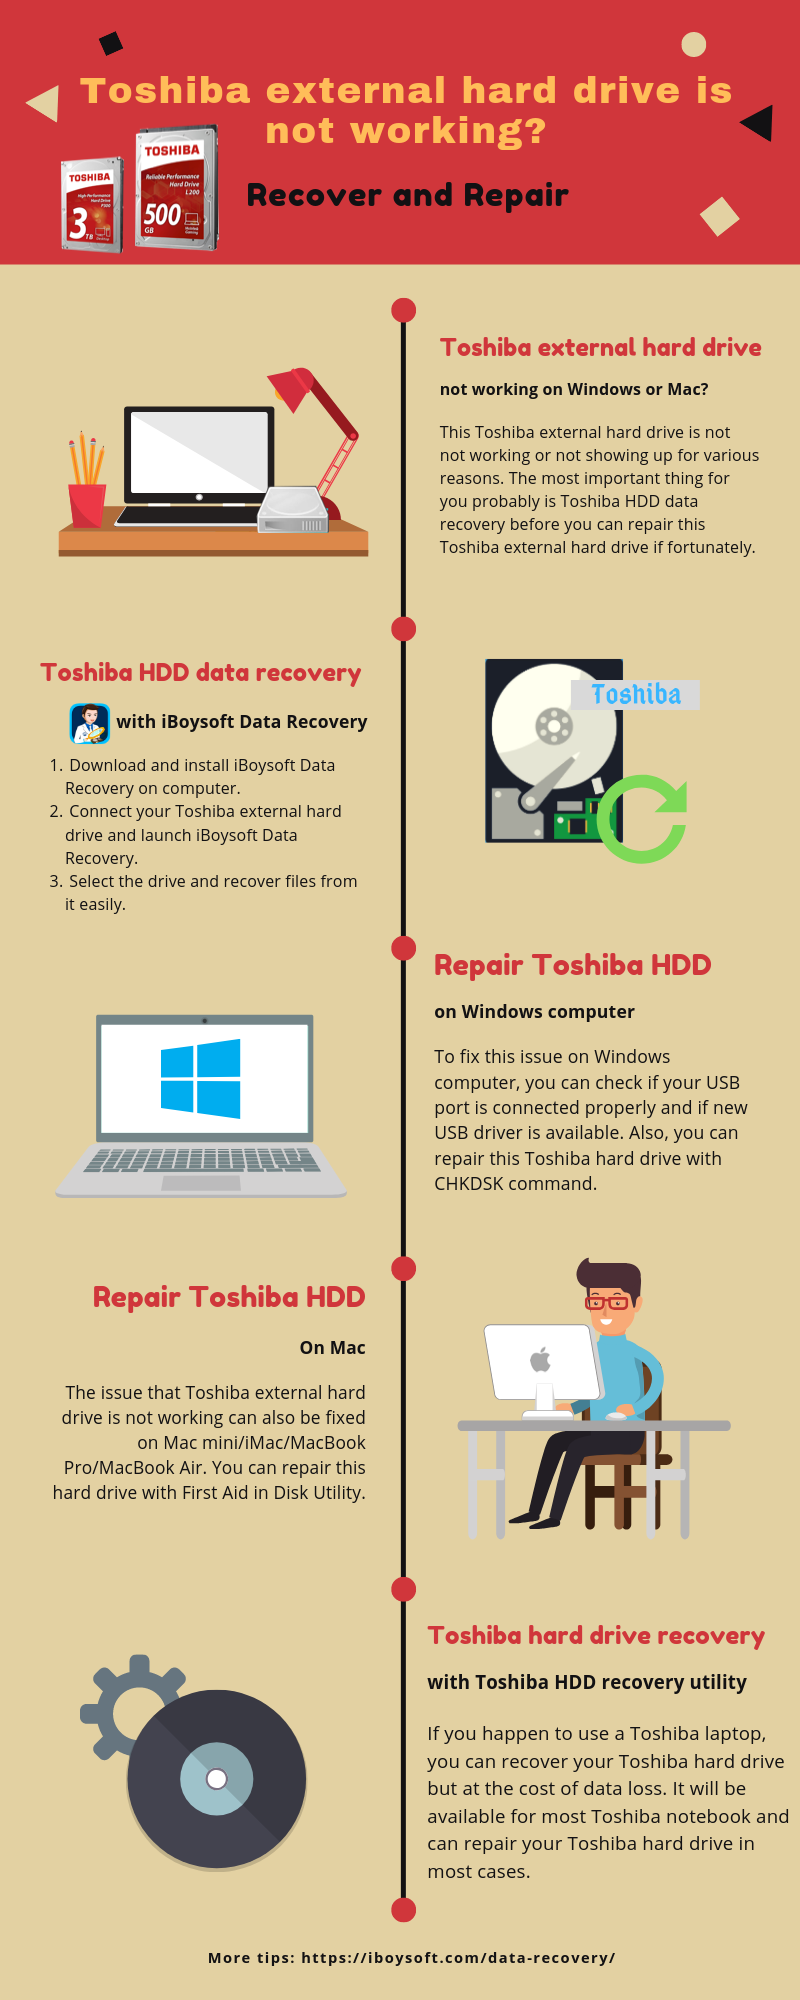 infographic about how to recover and repair a Toshiba external hard drive